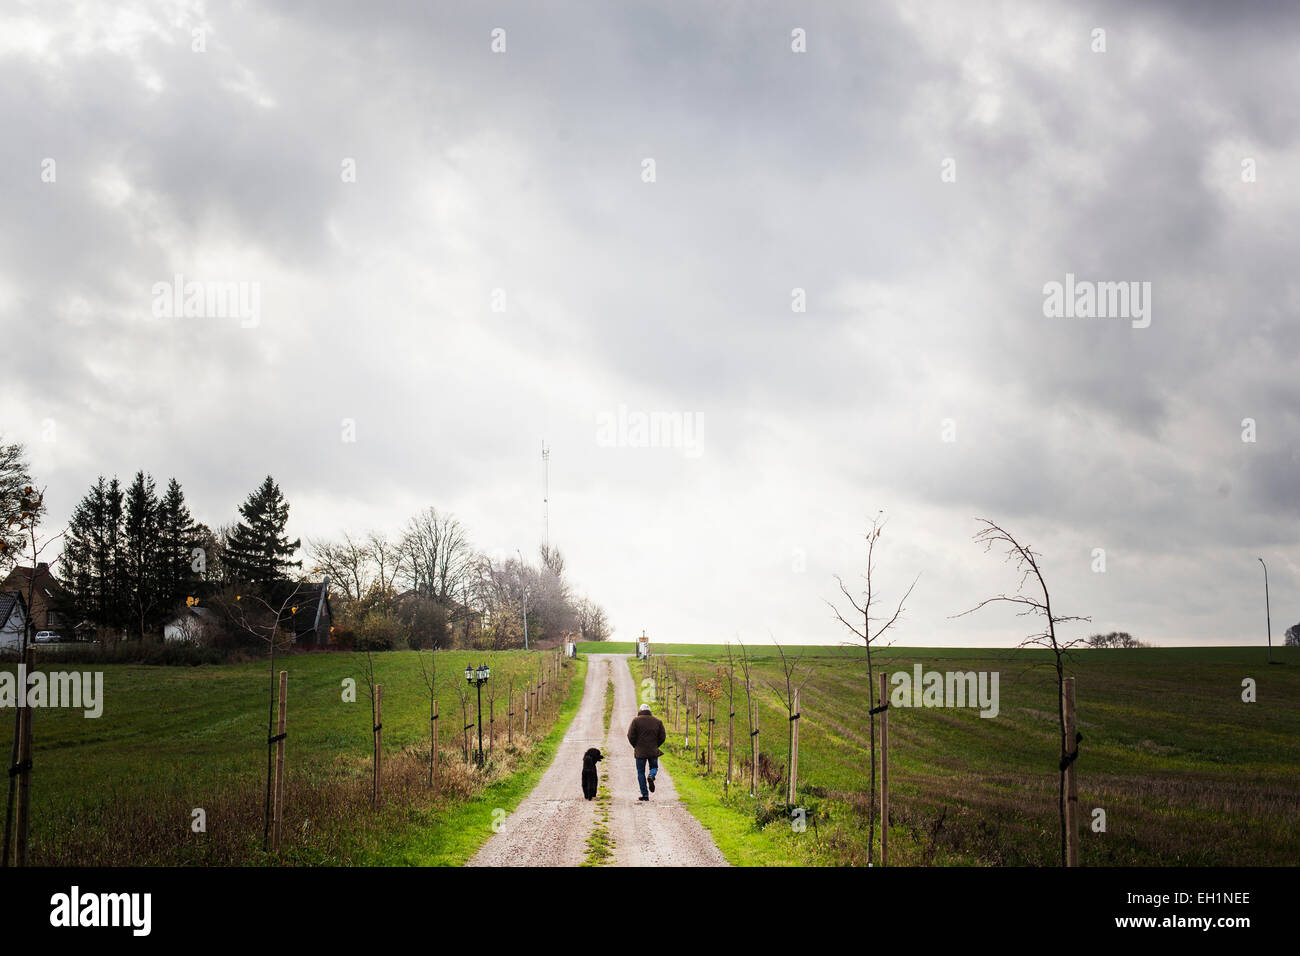 Rear view of man walking with dog on dirt road amidst farm against cloudy sky - Stock Image